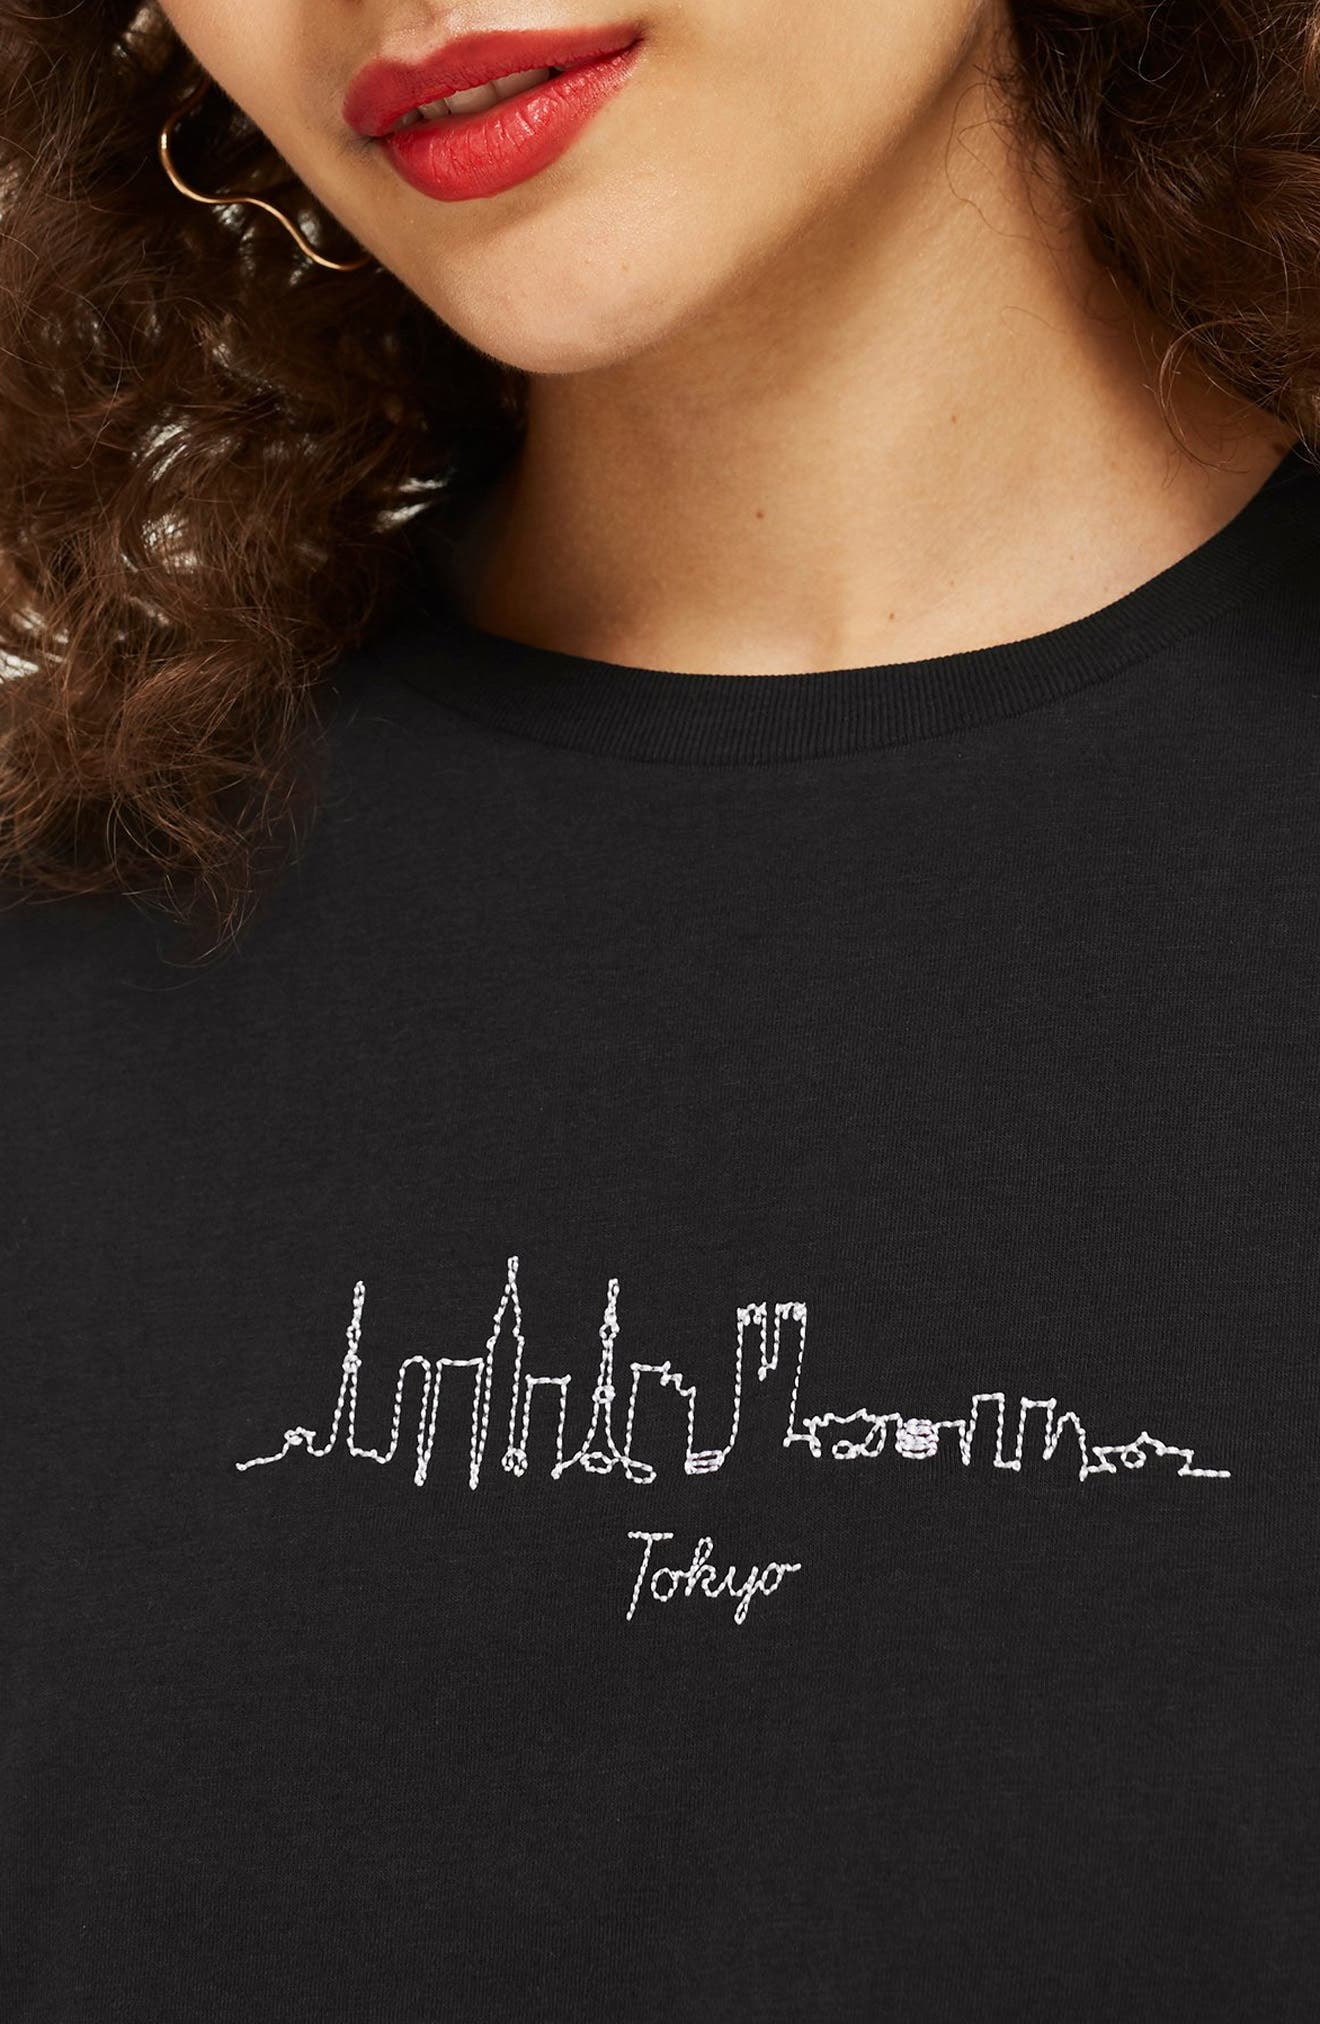 Skyline Tee,                             Alternate thumbnail 3, color,                             BLACK